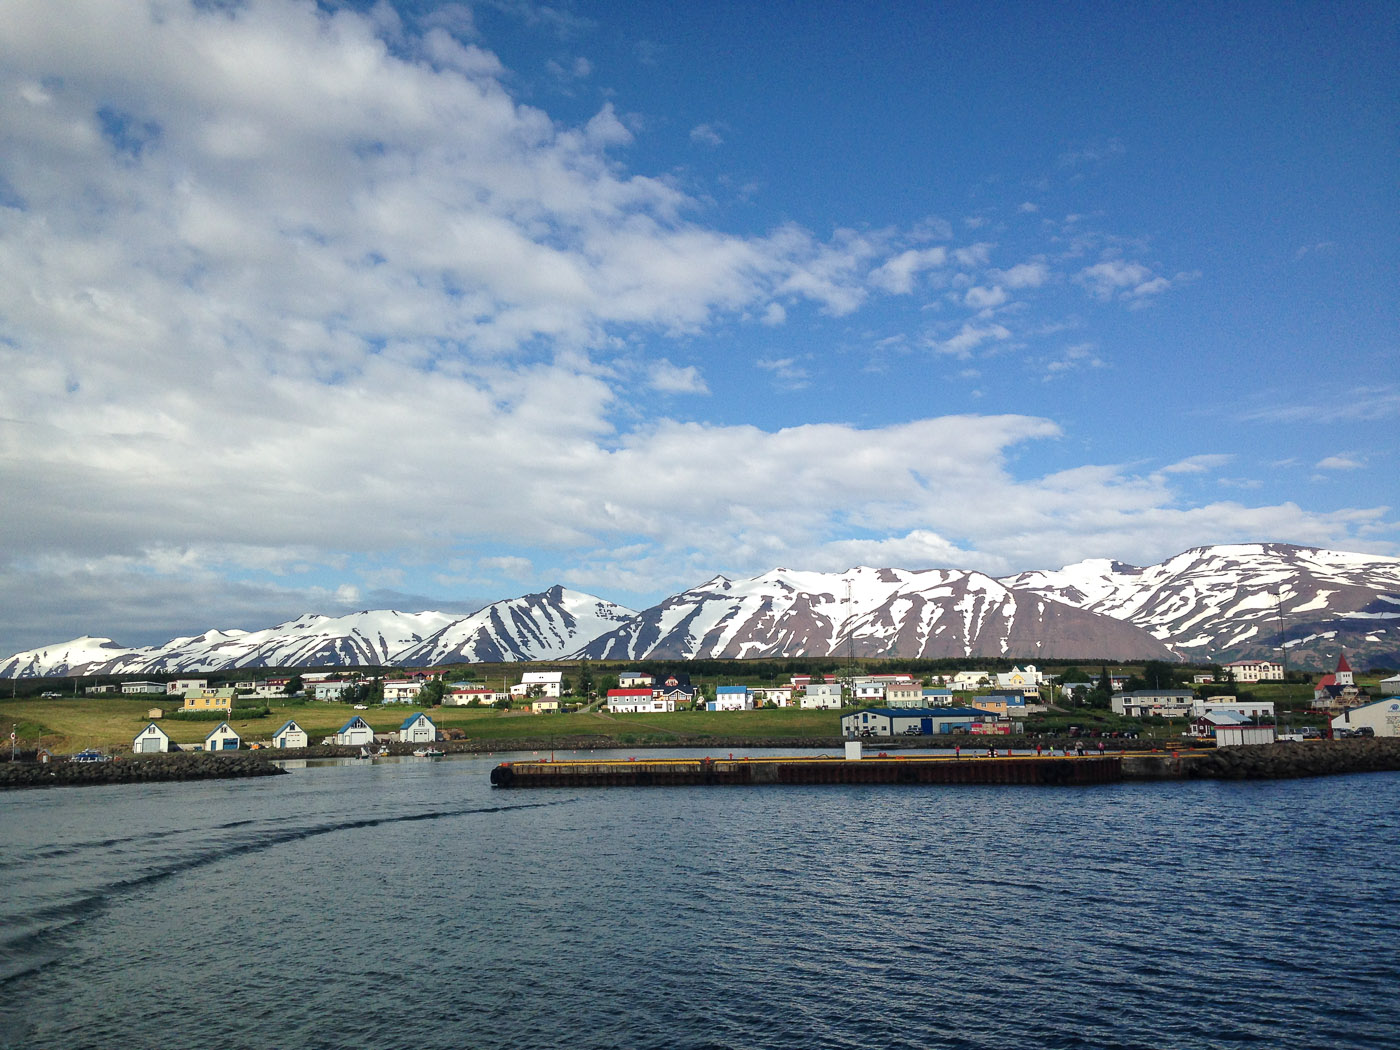 Northern Iceland - Hrísey island. On vacation. - <a href='http://www.hrisey.net/en/' target='_blank' class='linksnormal'>Hrísey</a>. Bless bless! (22 July 2014)